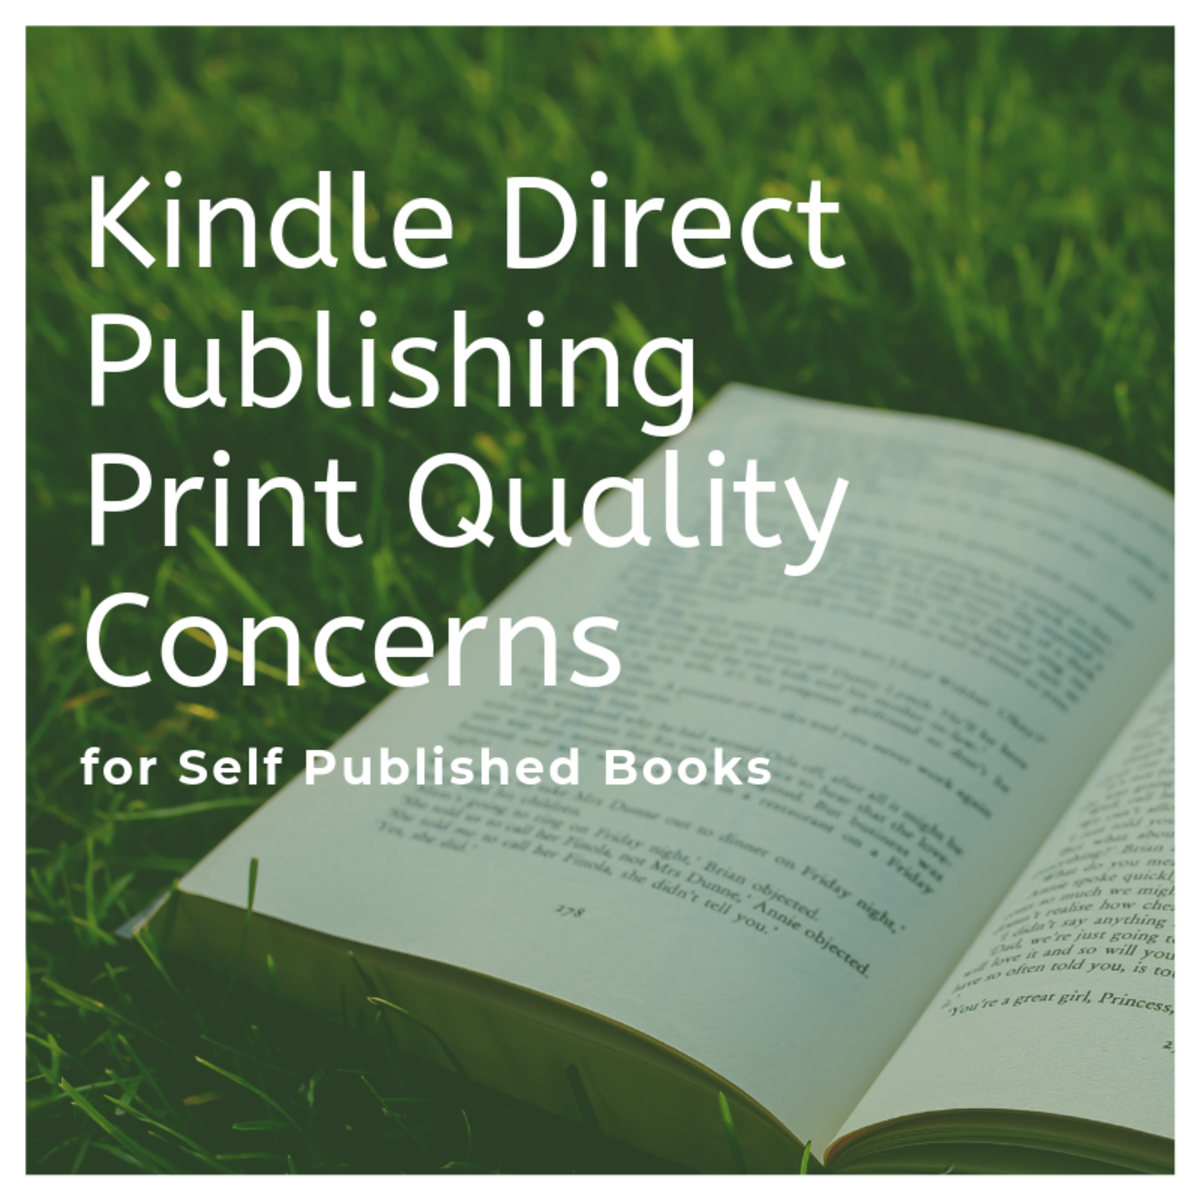 Kindle Direct Publishing Print Quality Concerns for Self Published Books